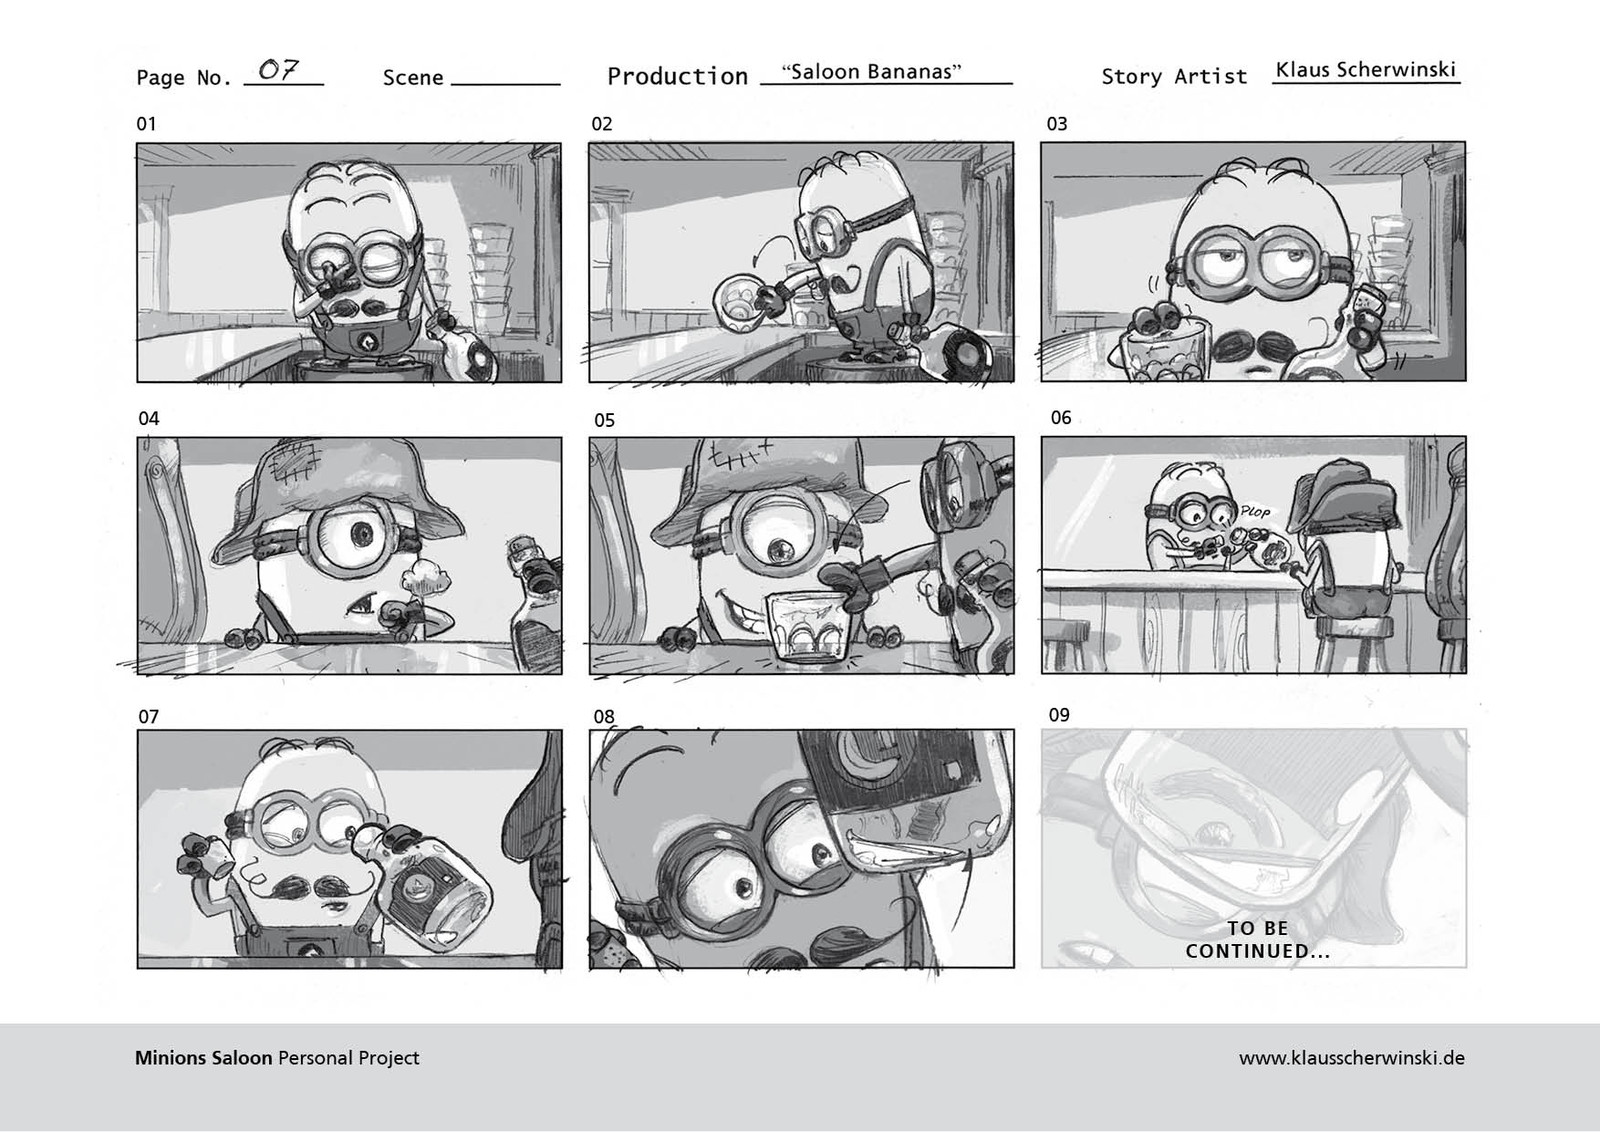 This completes ca. 50% of the story. The rest exists only as a rough storyboard so far - check it our here: https://www.artstation.com/artwork/Zd2E0